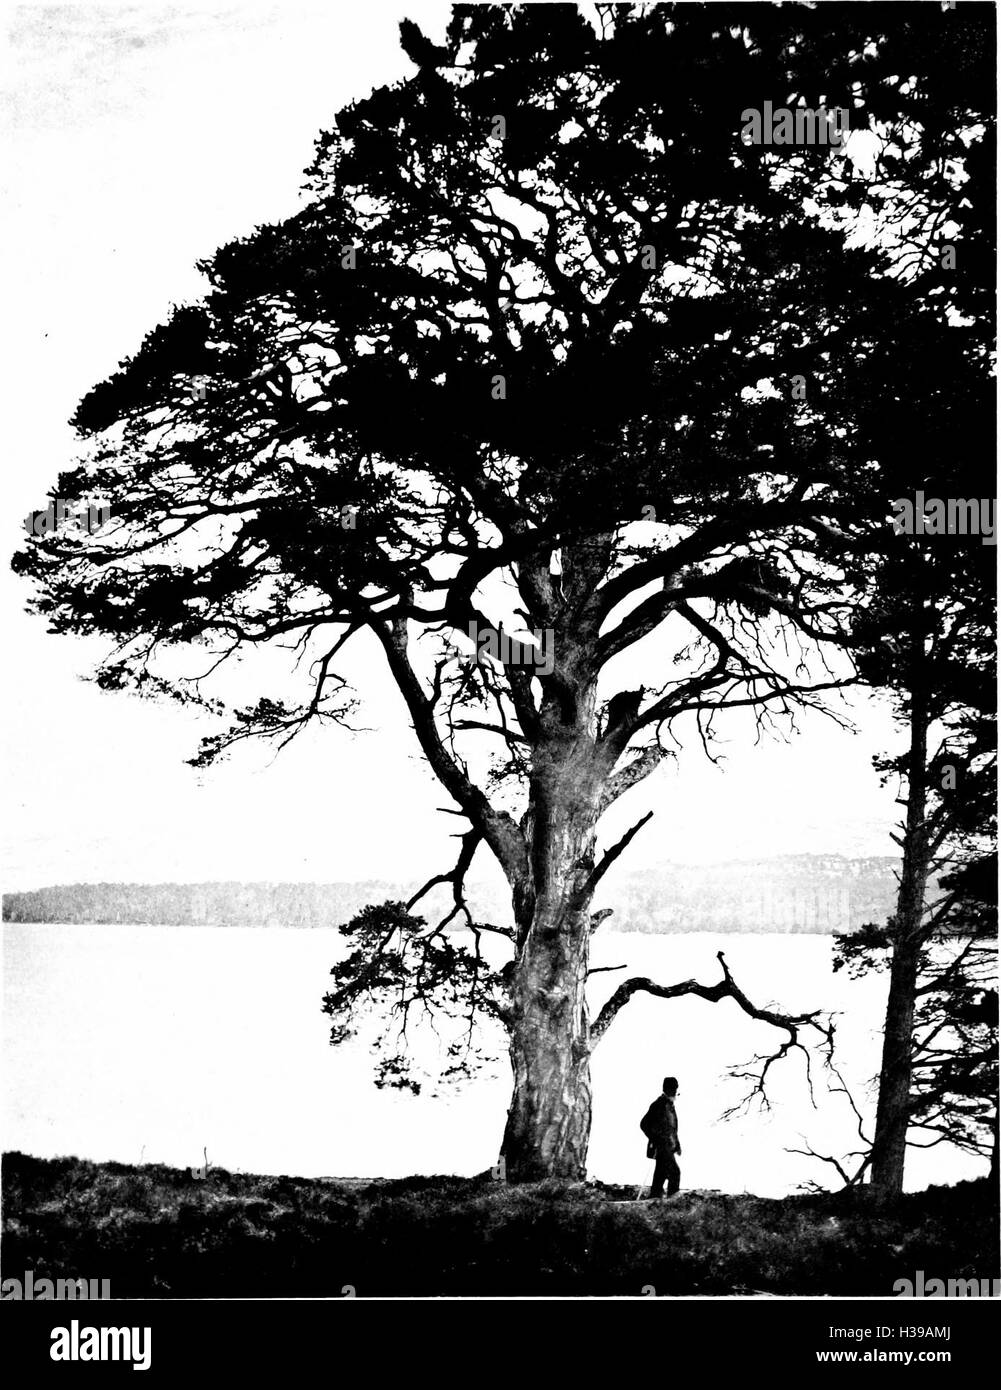 books book black and white stock photos images page 57 alamy Spain Landscape the trees of great britain and ireland 1906 2015910 stock image